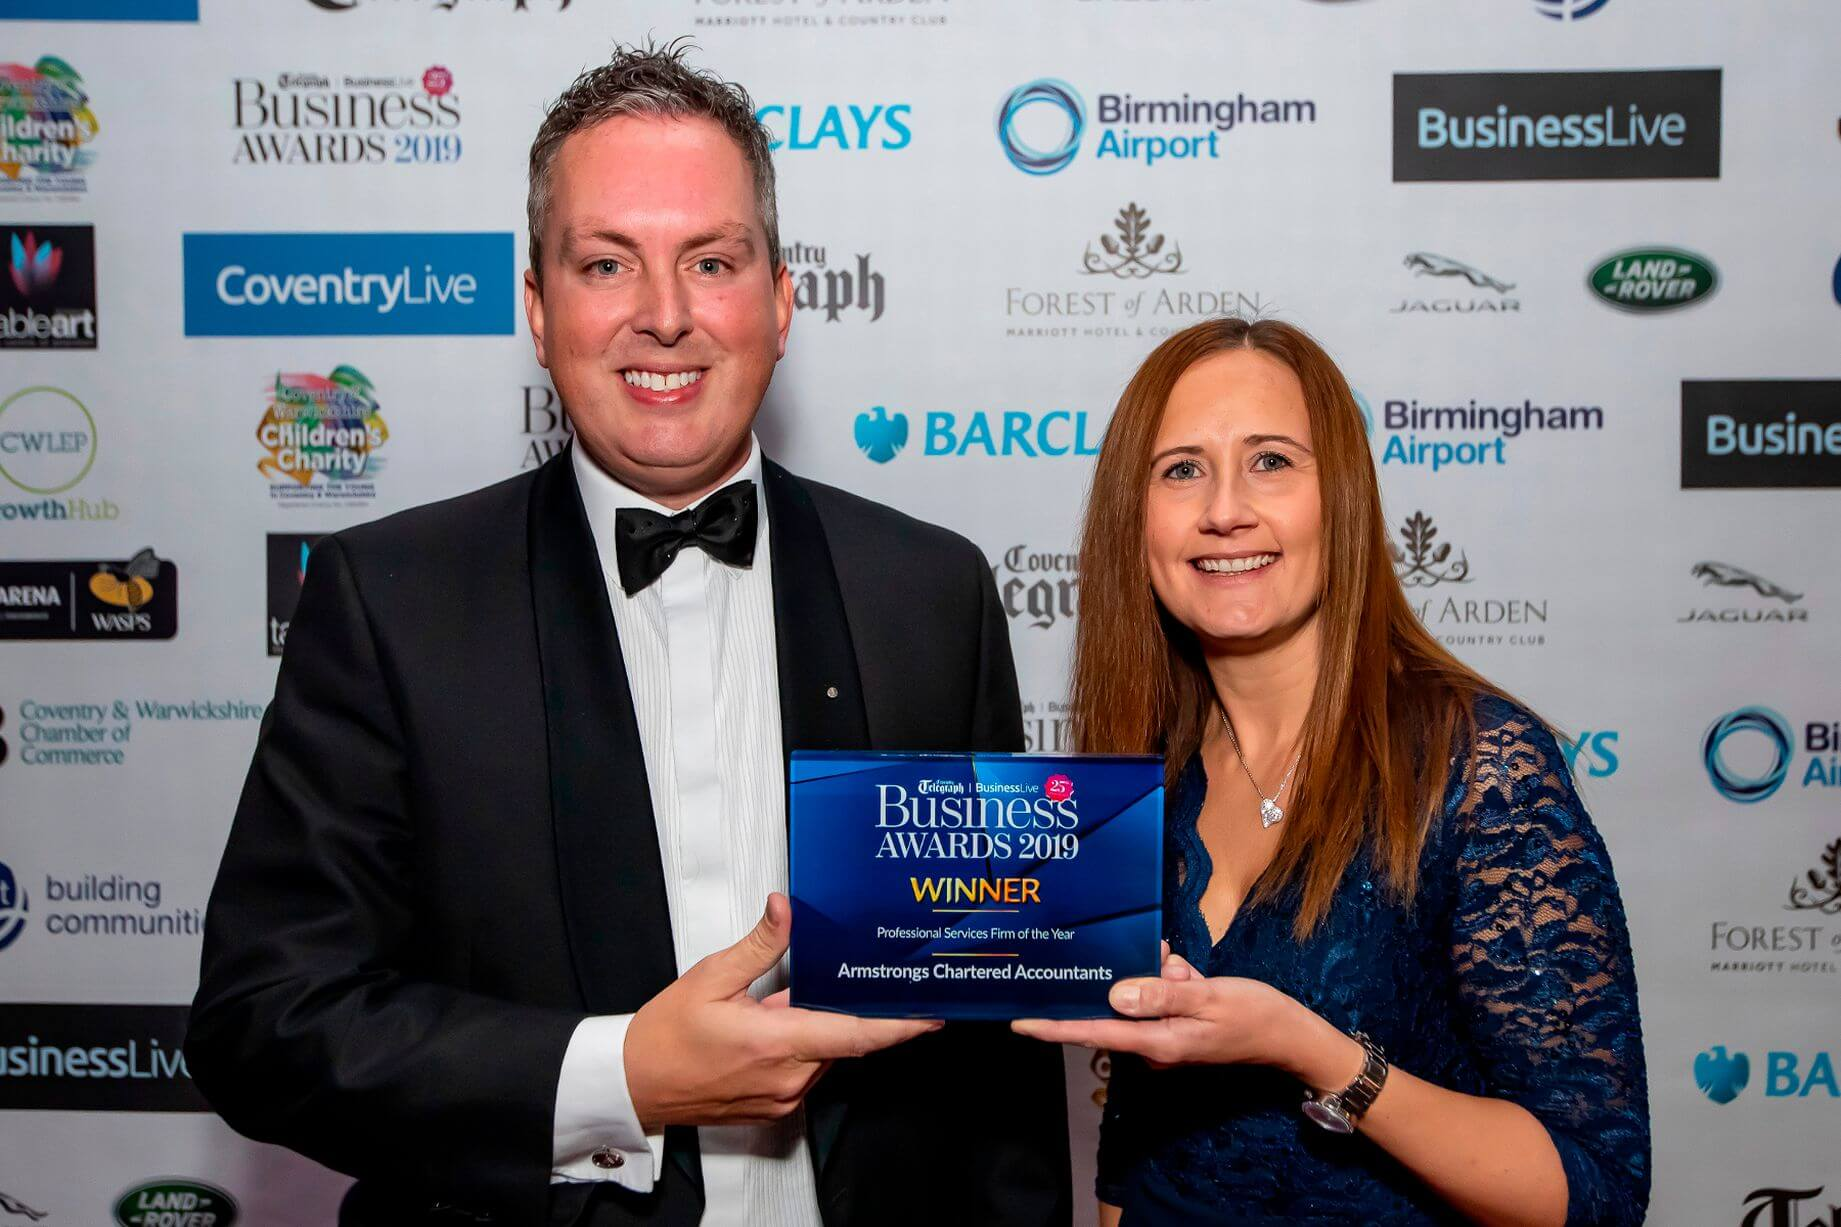 Armstrongs named Professional Services Firm of the Year